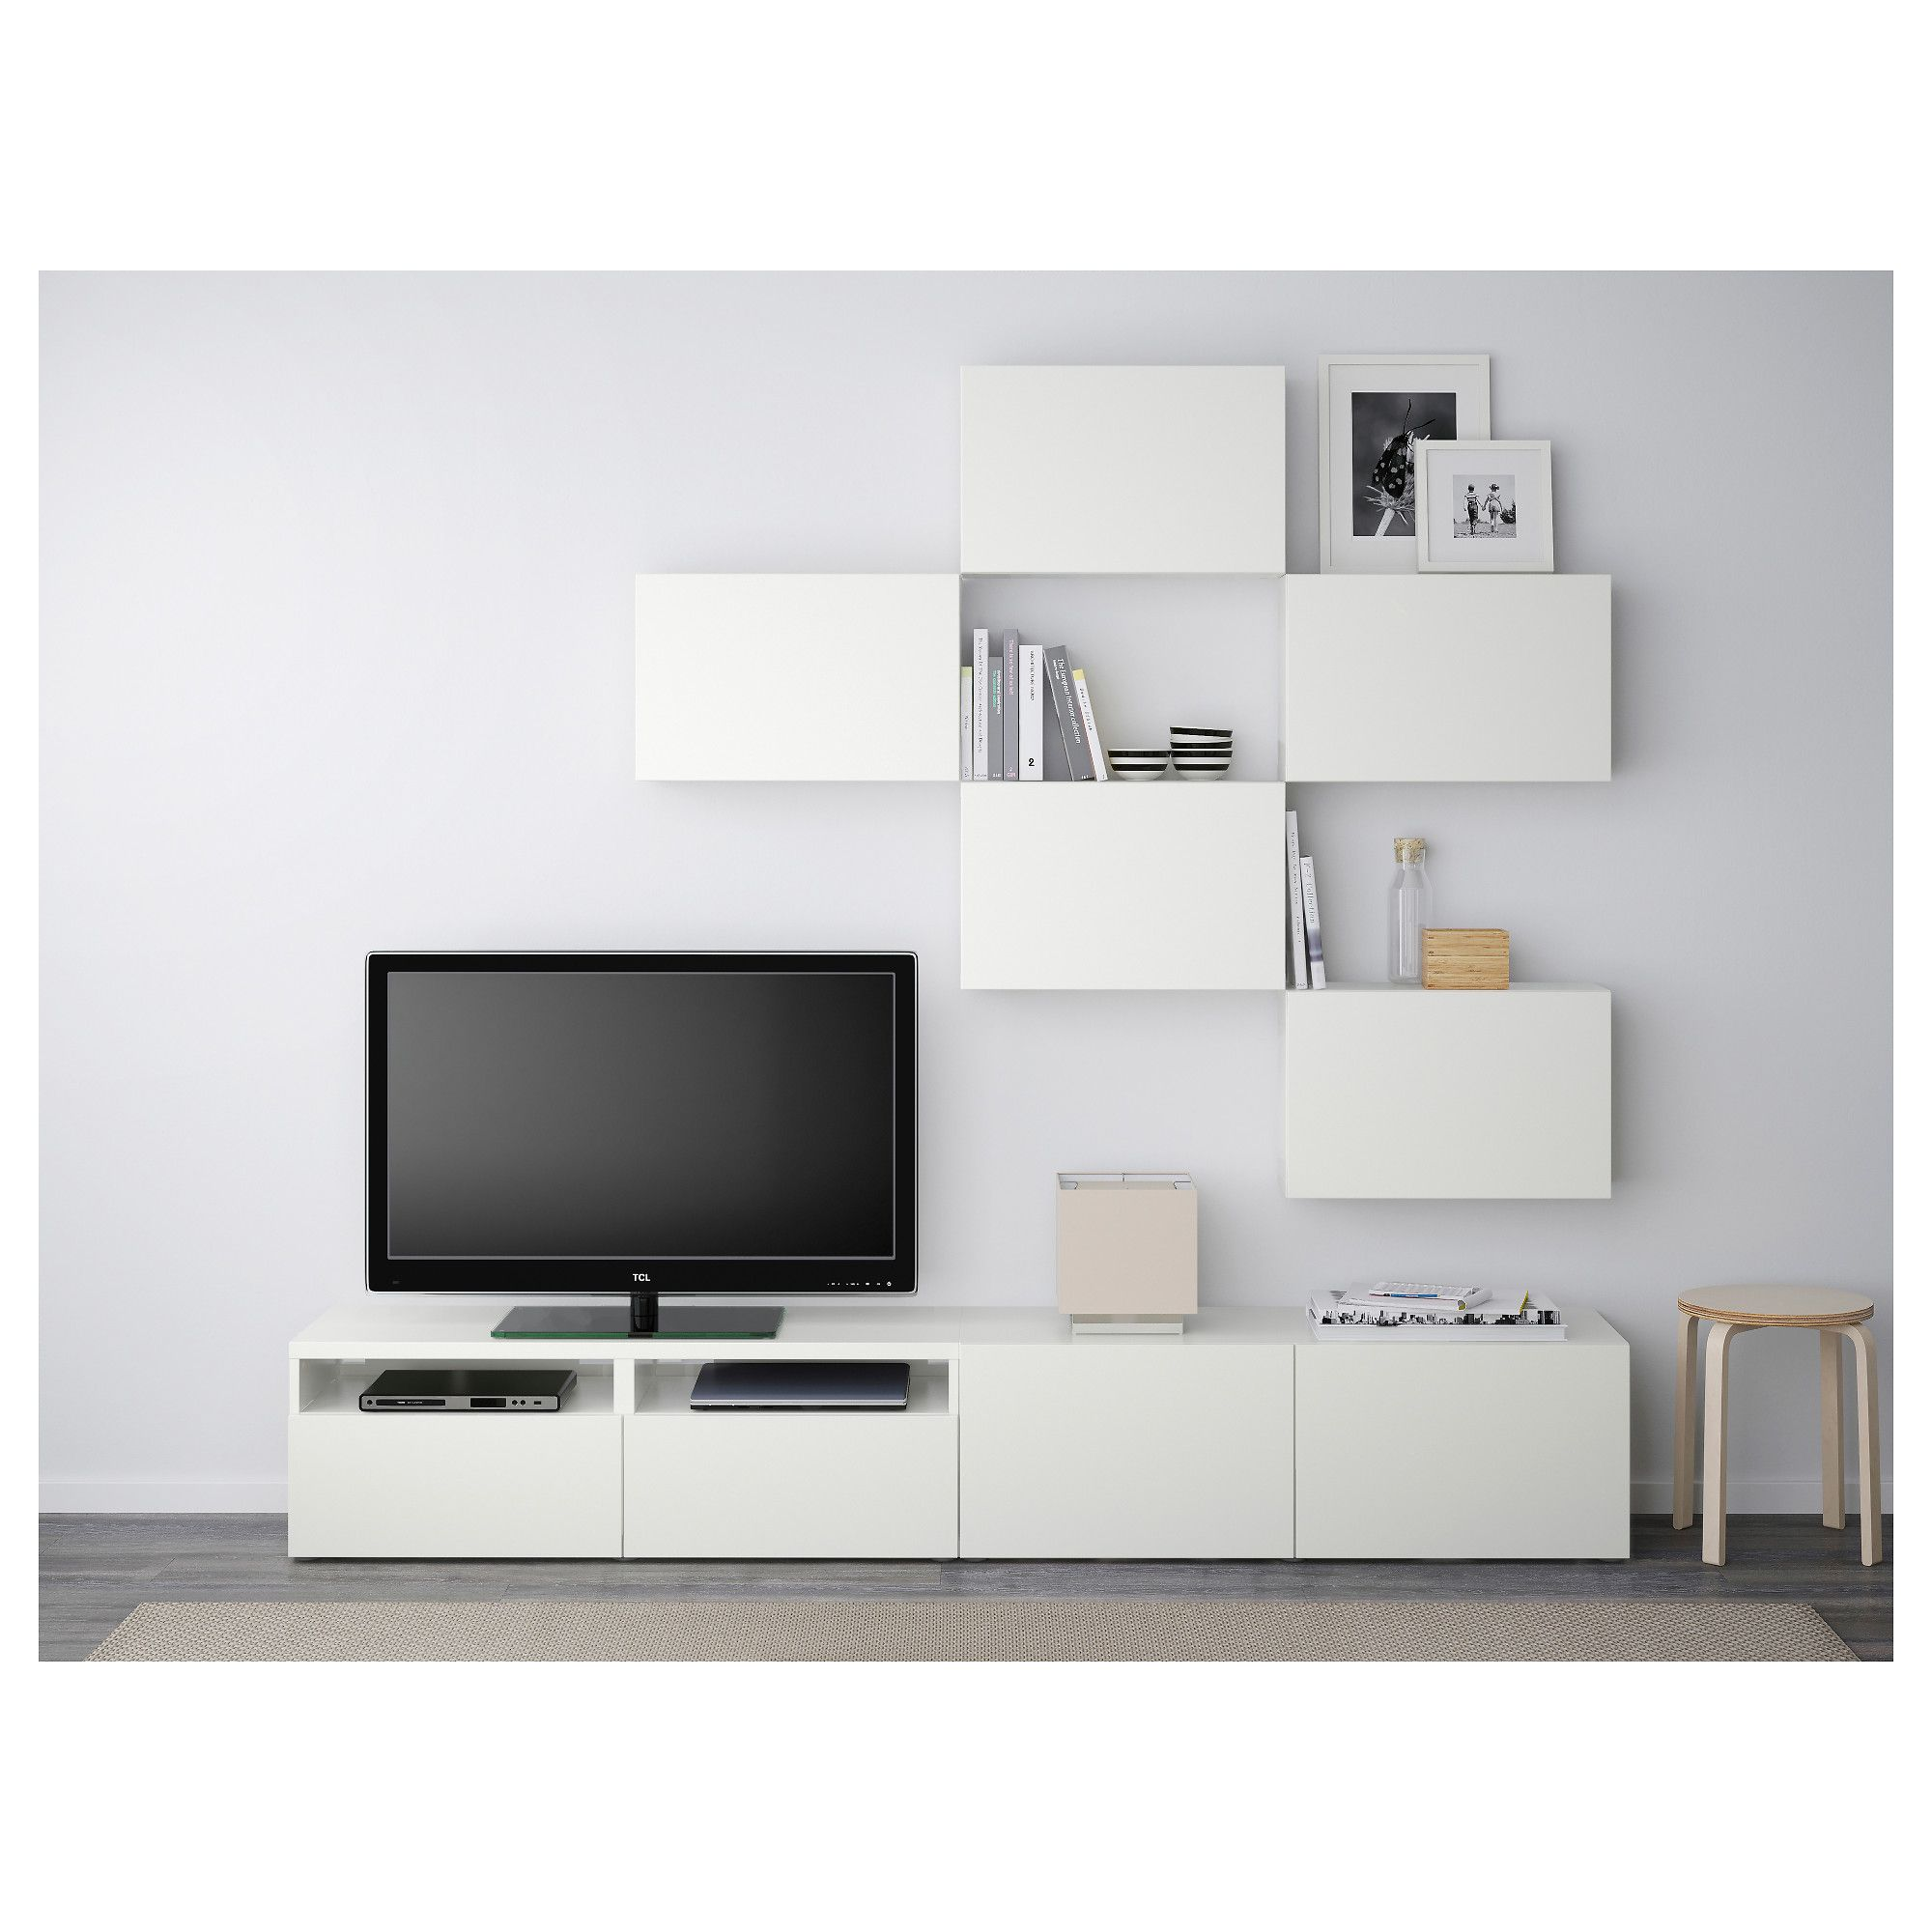 Tv Cabinets Ikea Home Design # Meuble Cache Tv Ikea